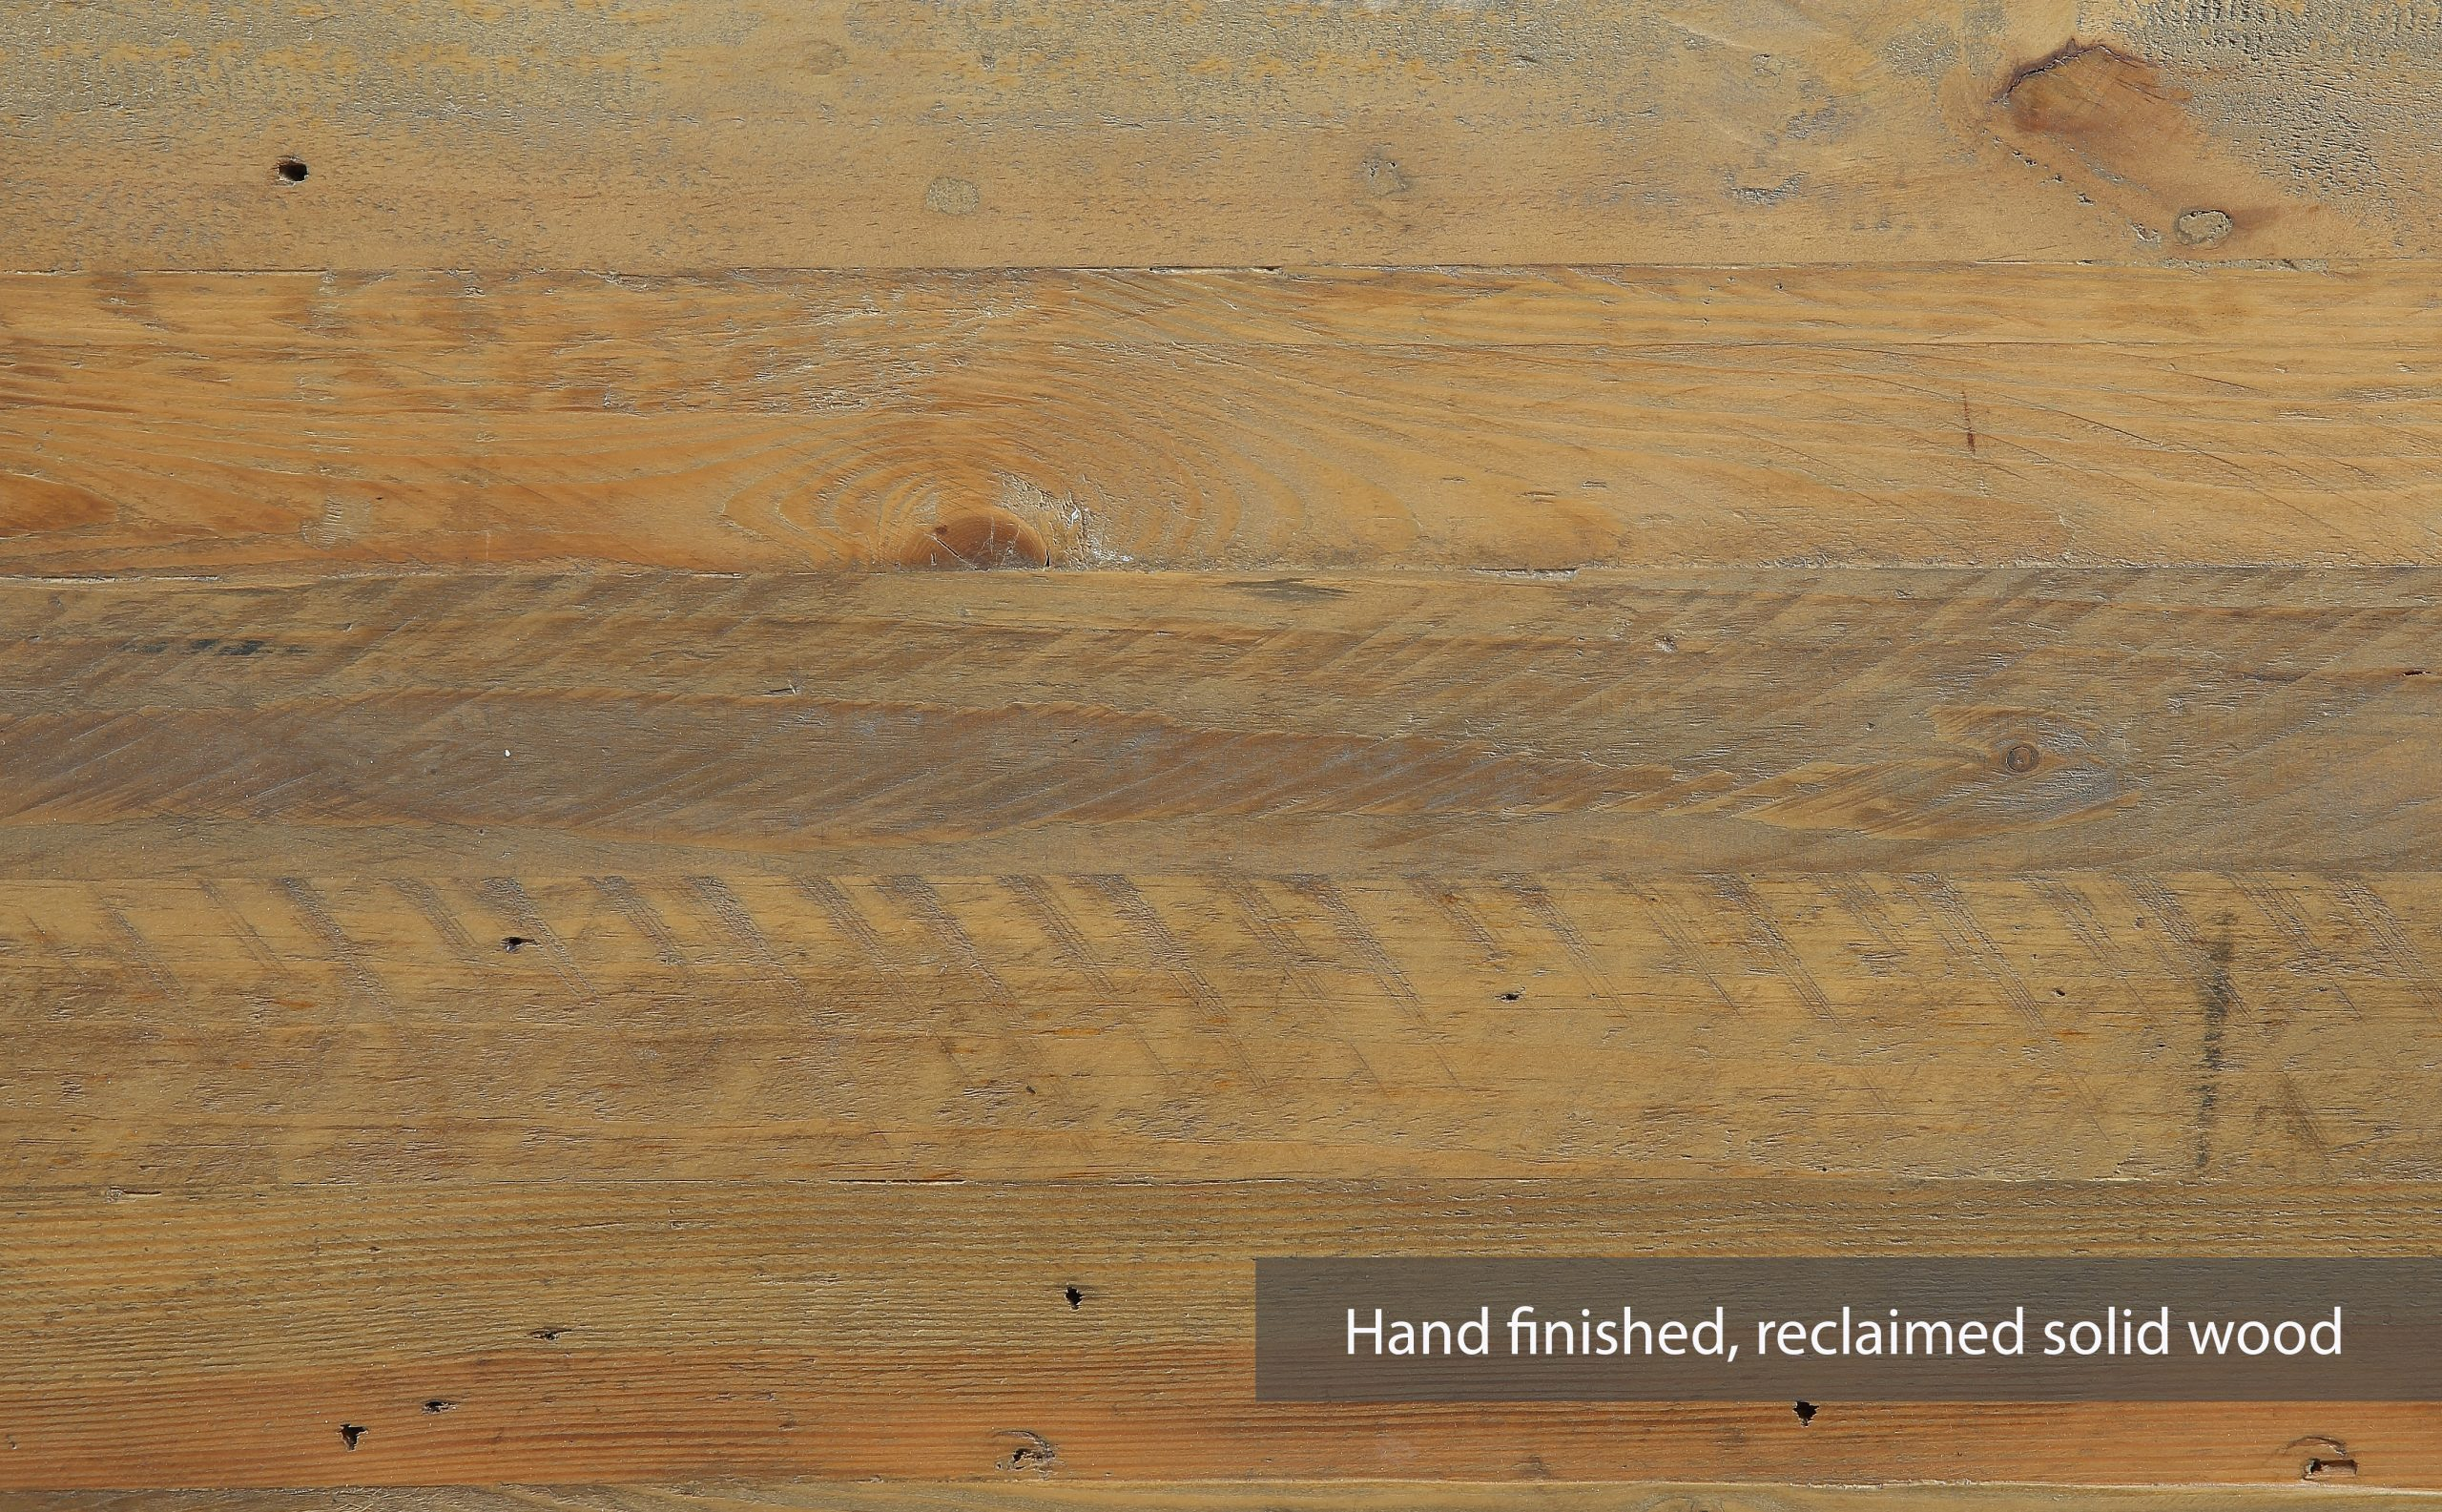 hand-finished, reclaimed solid wood